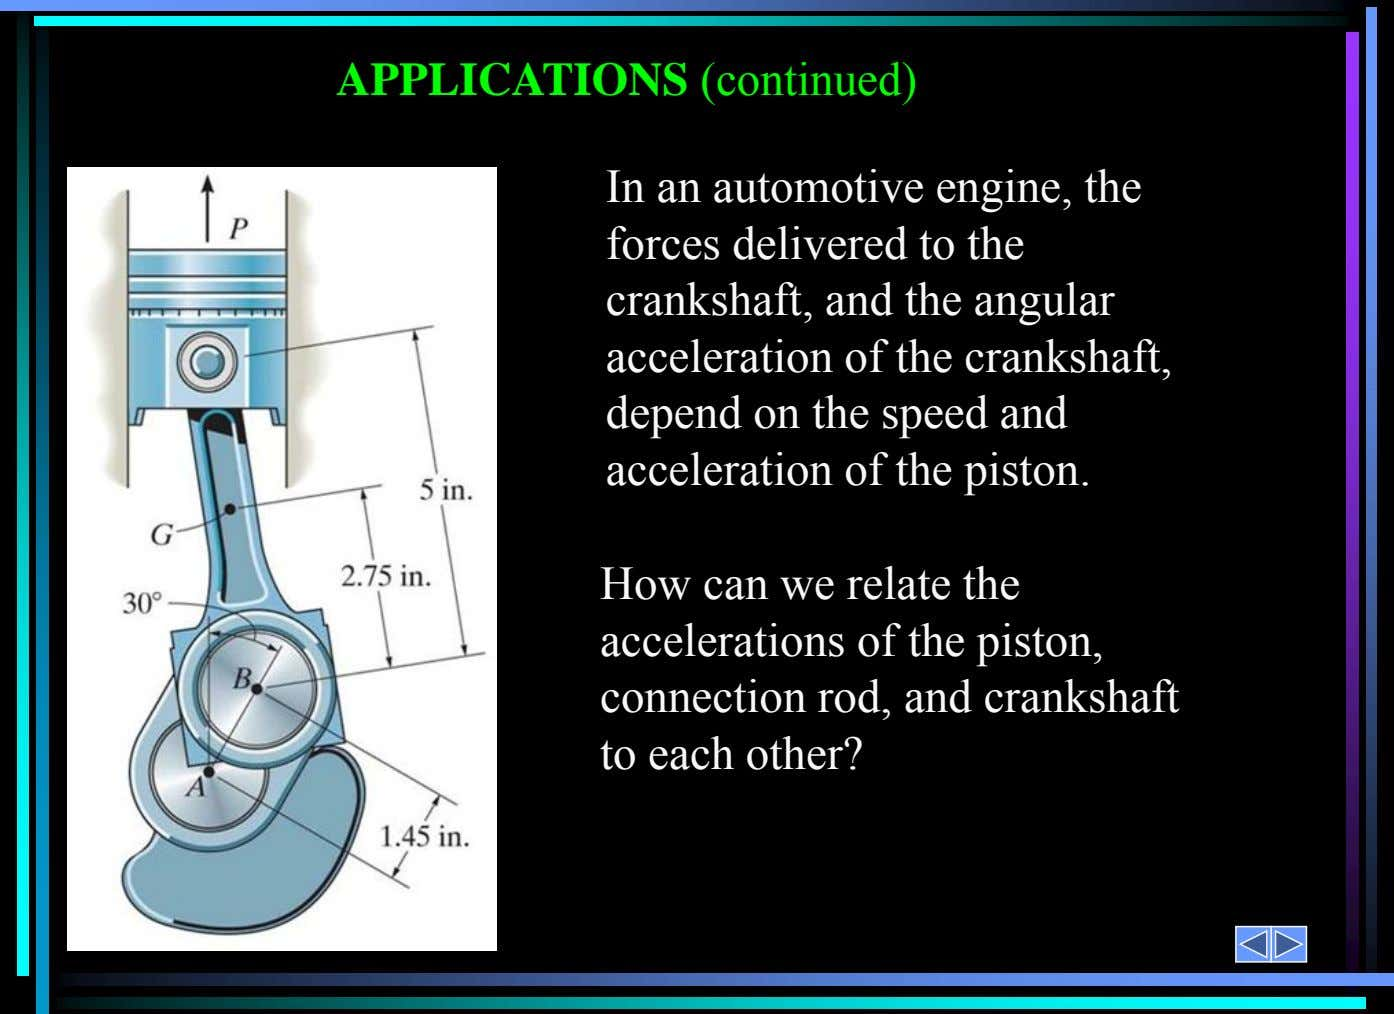 In an automotive engine, the forces delivered to the crankshaft, and the angular acceleration of the